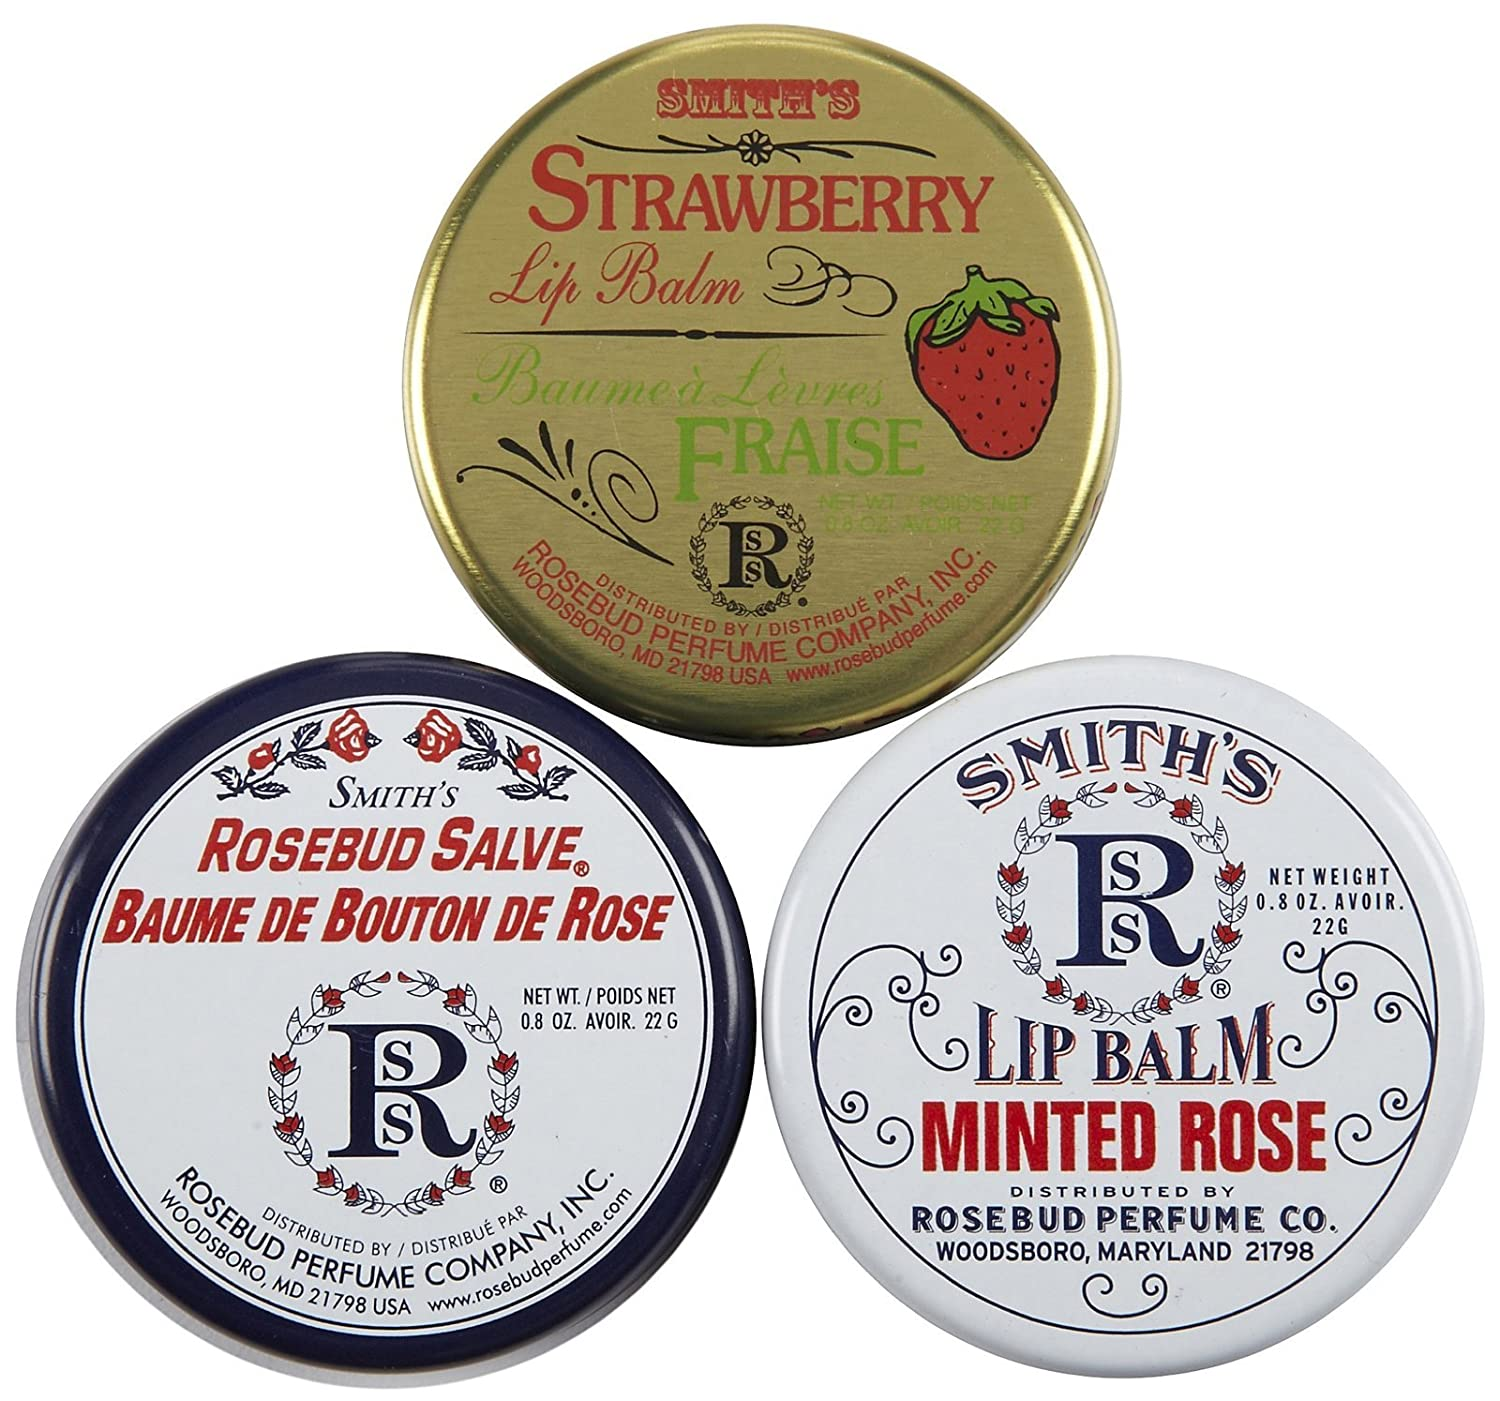 Rosebud Salve by Rosebud Perfume Co. #22